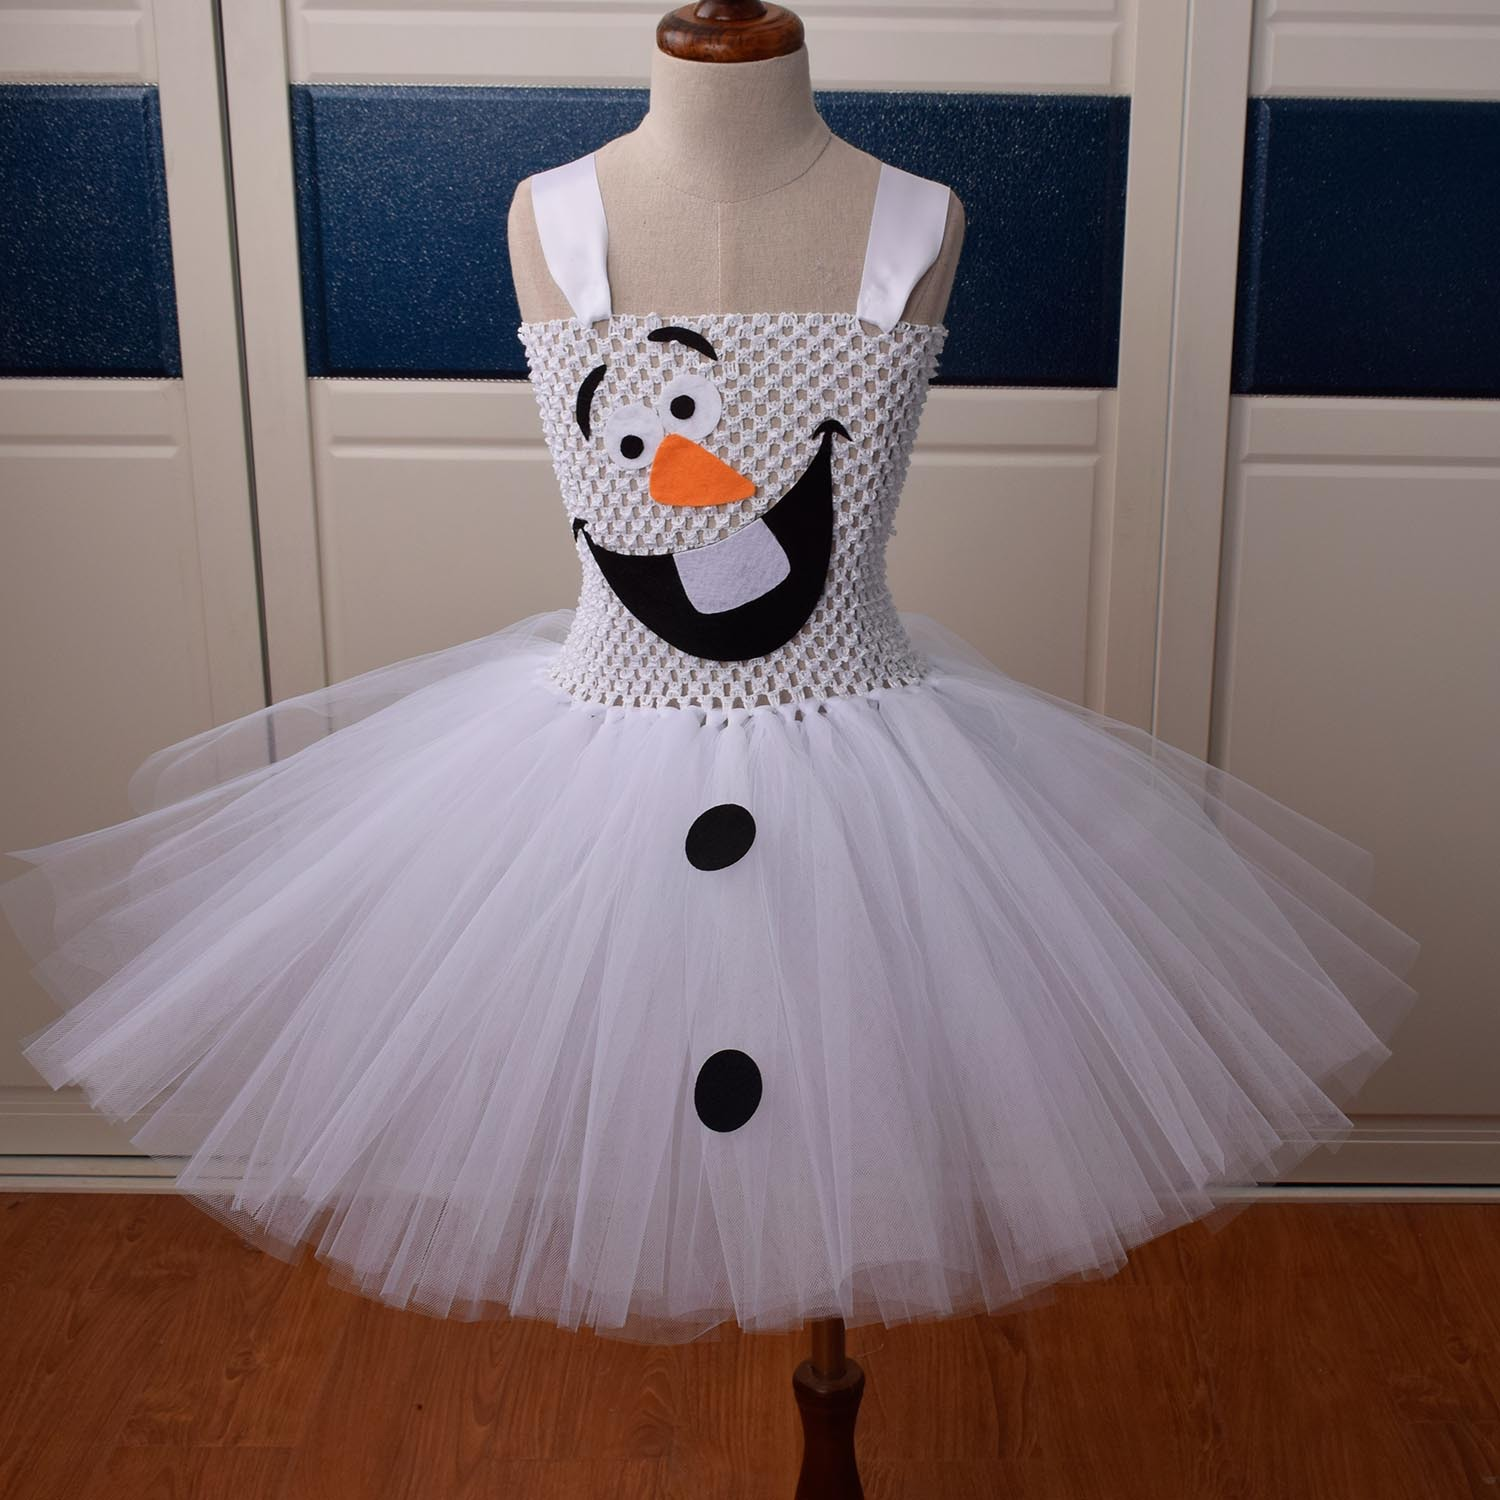 Infant Olaf Costume | Kids Olaf Snowman Costume X Mas Girls Cute Tutu Dress Cosplay Christmas Party Outfit Gift For Infant Child Toddler Newborn Baby